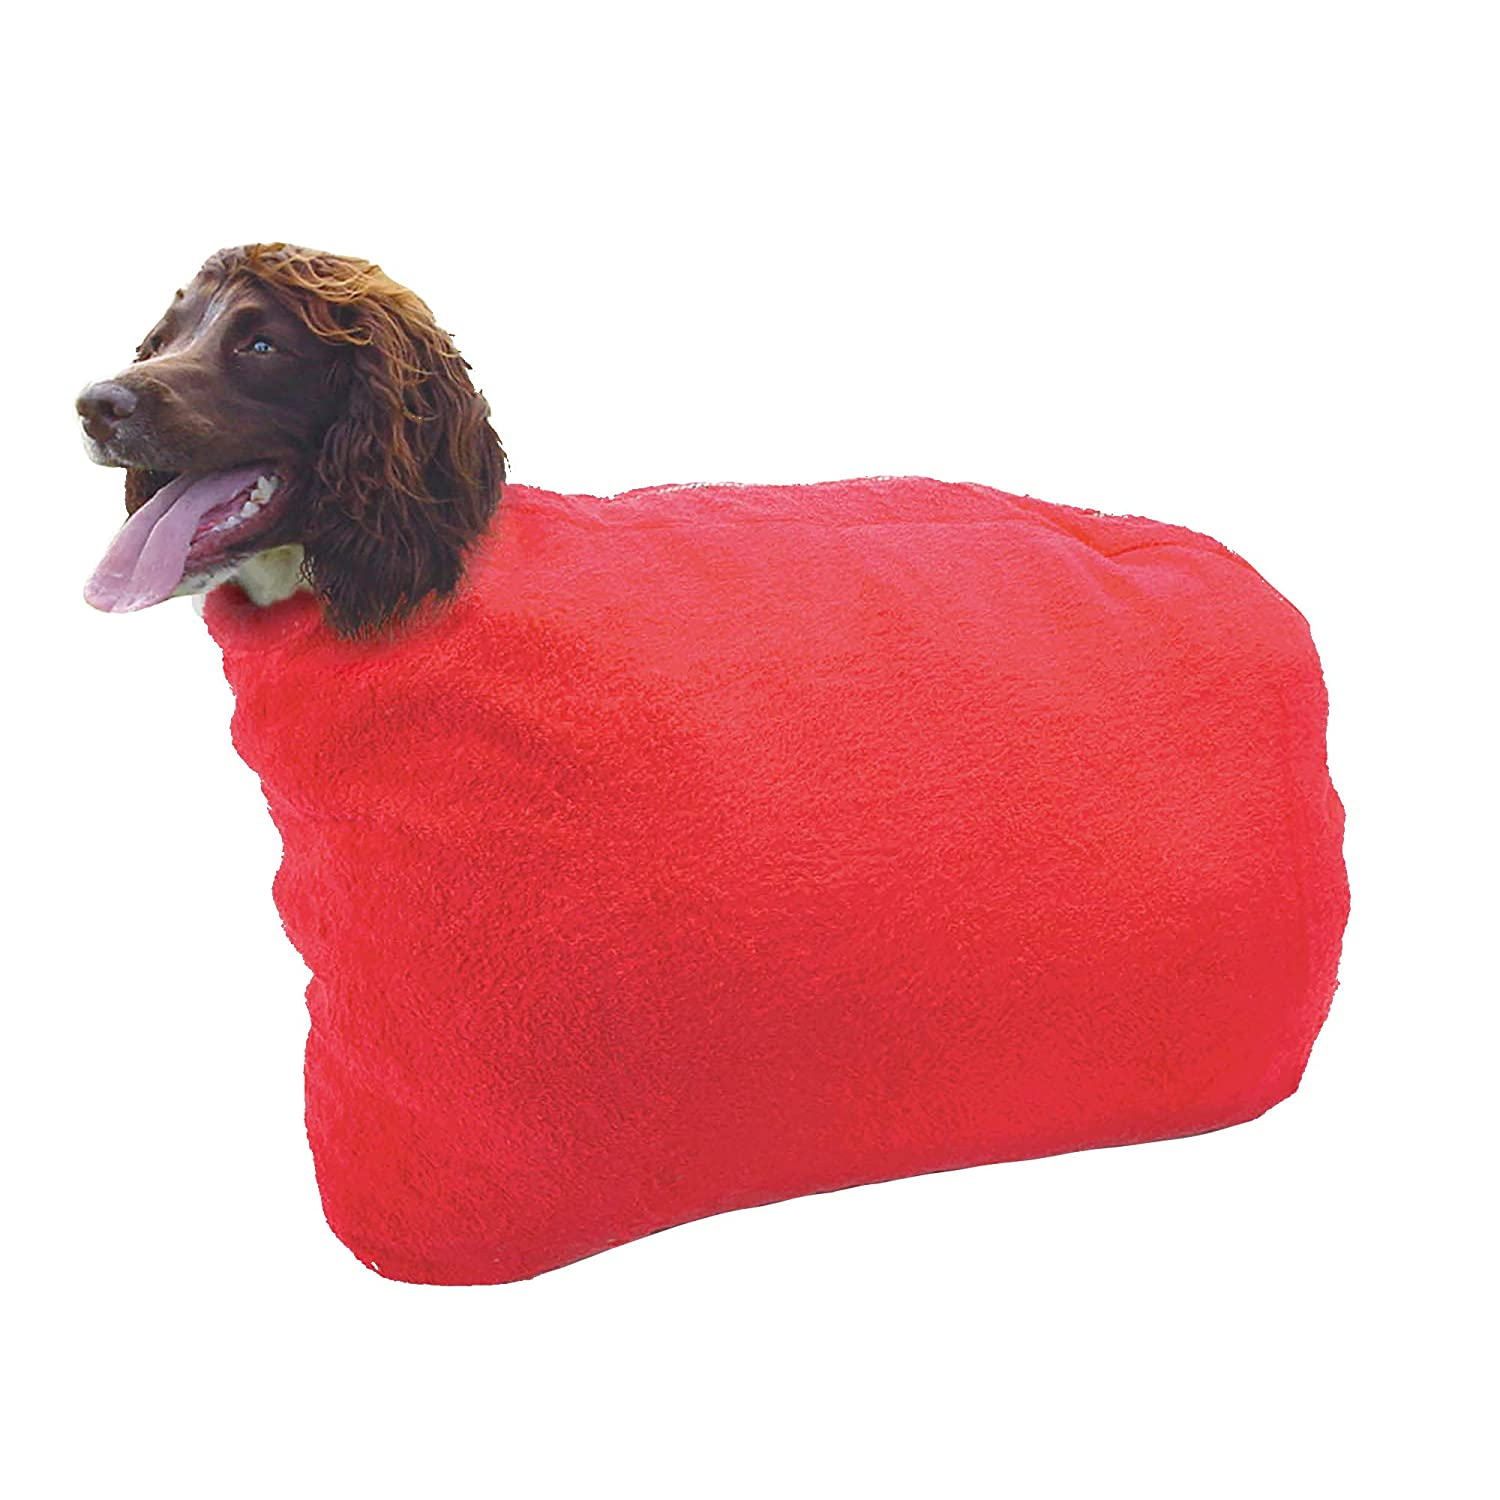 Red 18in neck Red 18in neck Pennine Dry Dog Bag (18in neck) (Red)